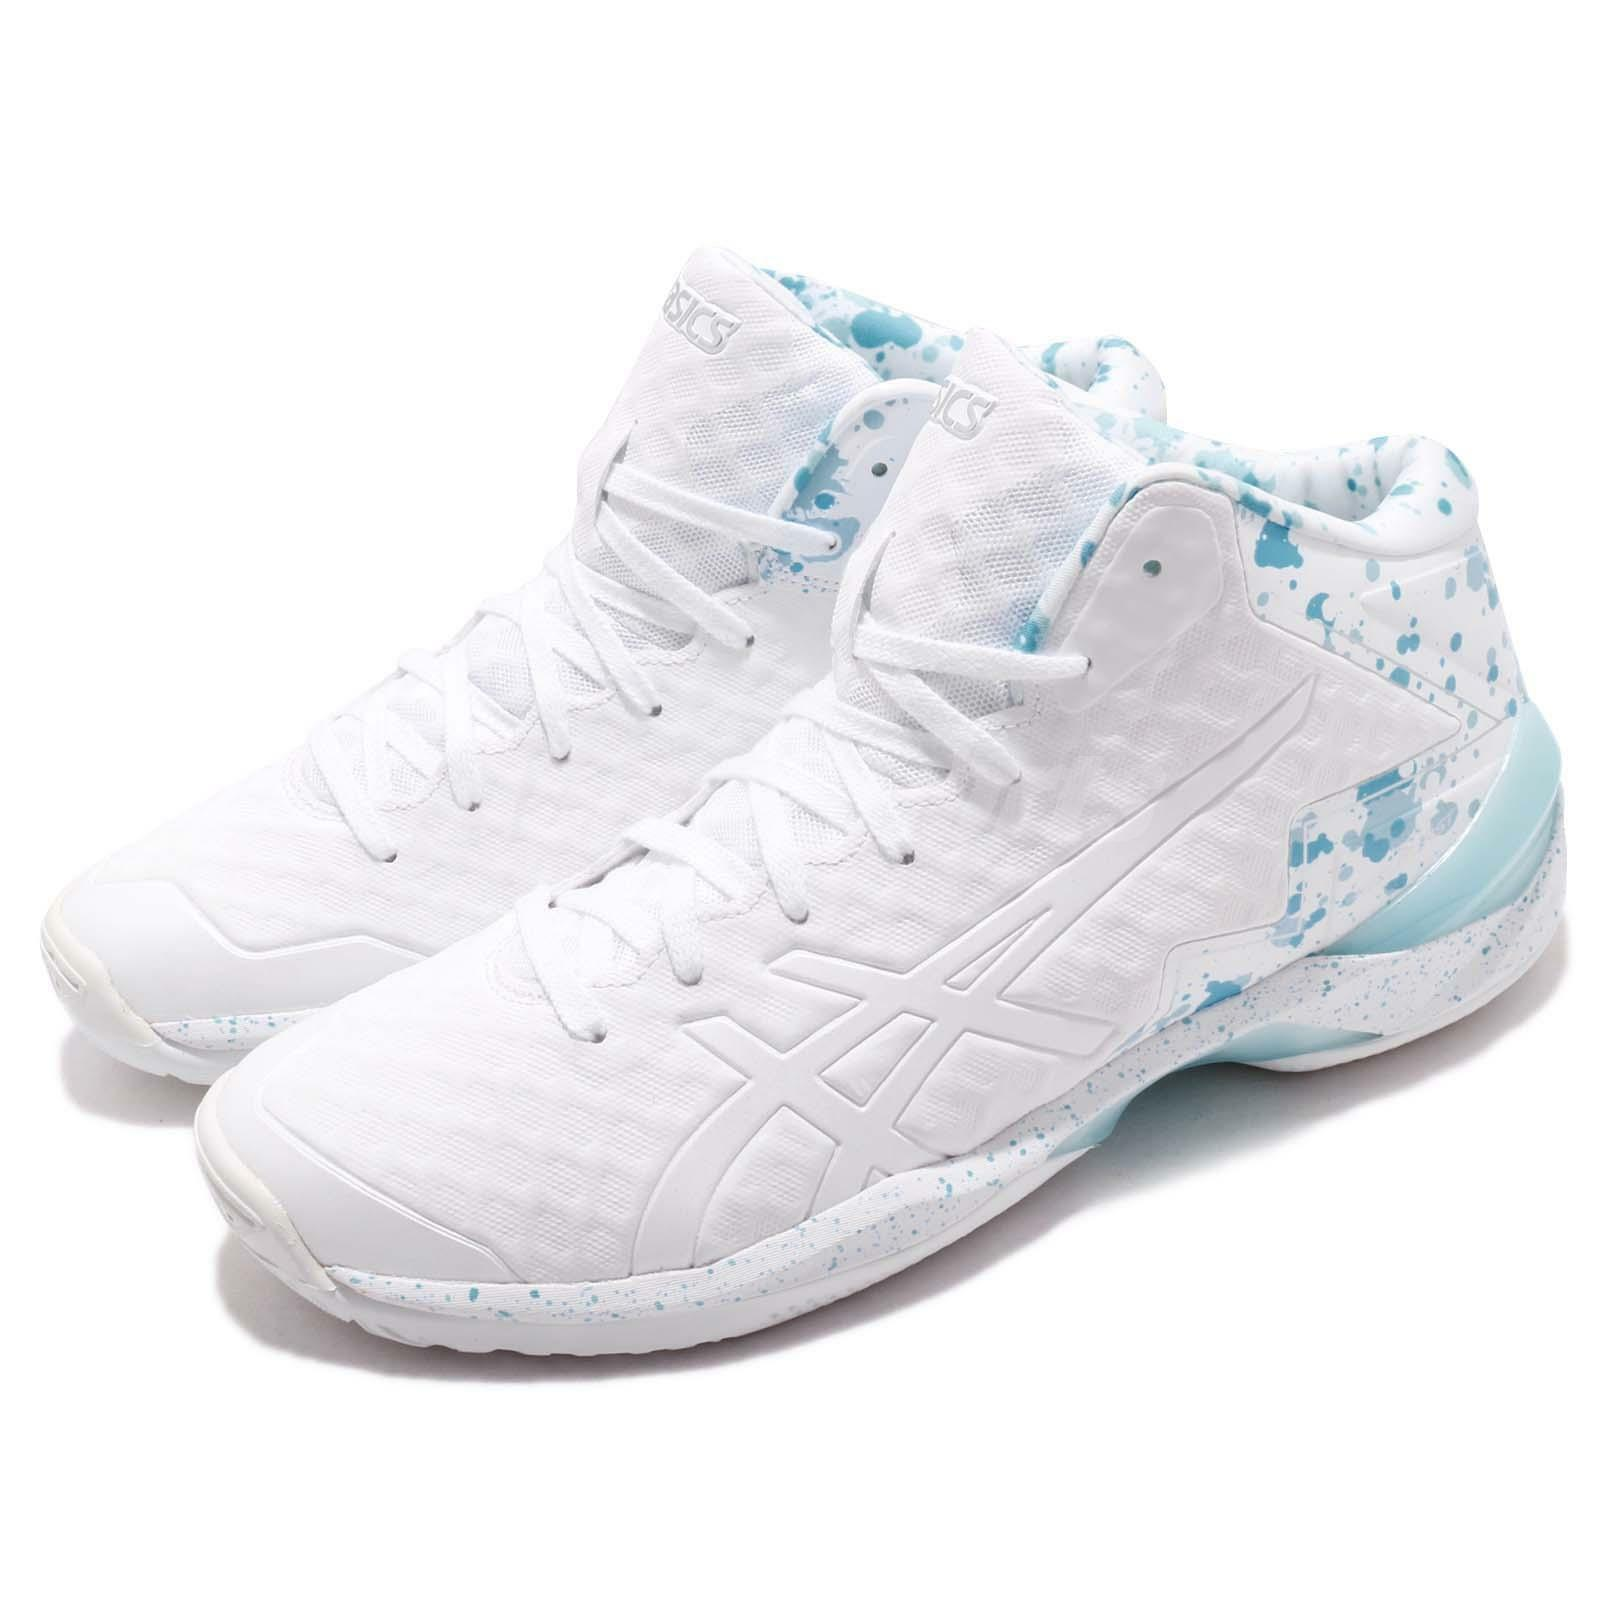 Asics Gel-Burst 21 GE Hi blanco azul Men Basketball zapatos zapatillas TBF30G-0101